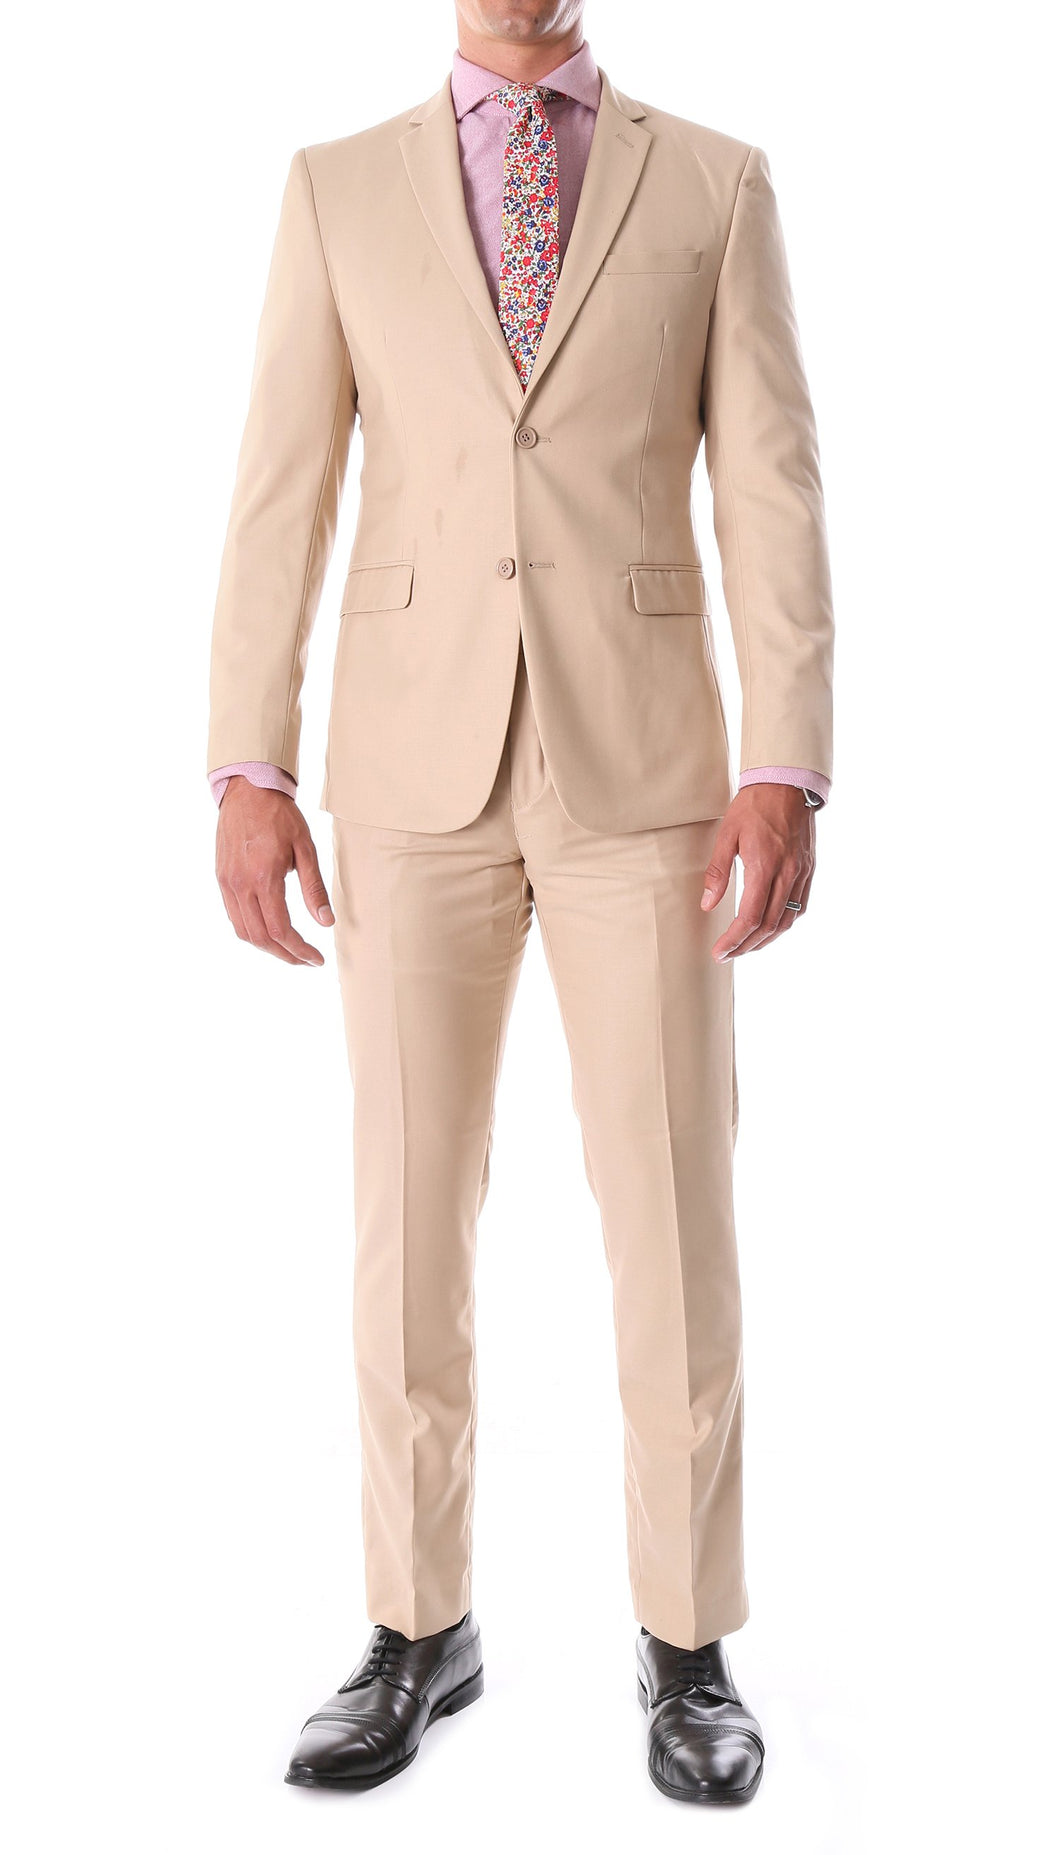 Oslo Tan Notch Lapel 2 Piece Suit Slim Fit - Ferrecci USA